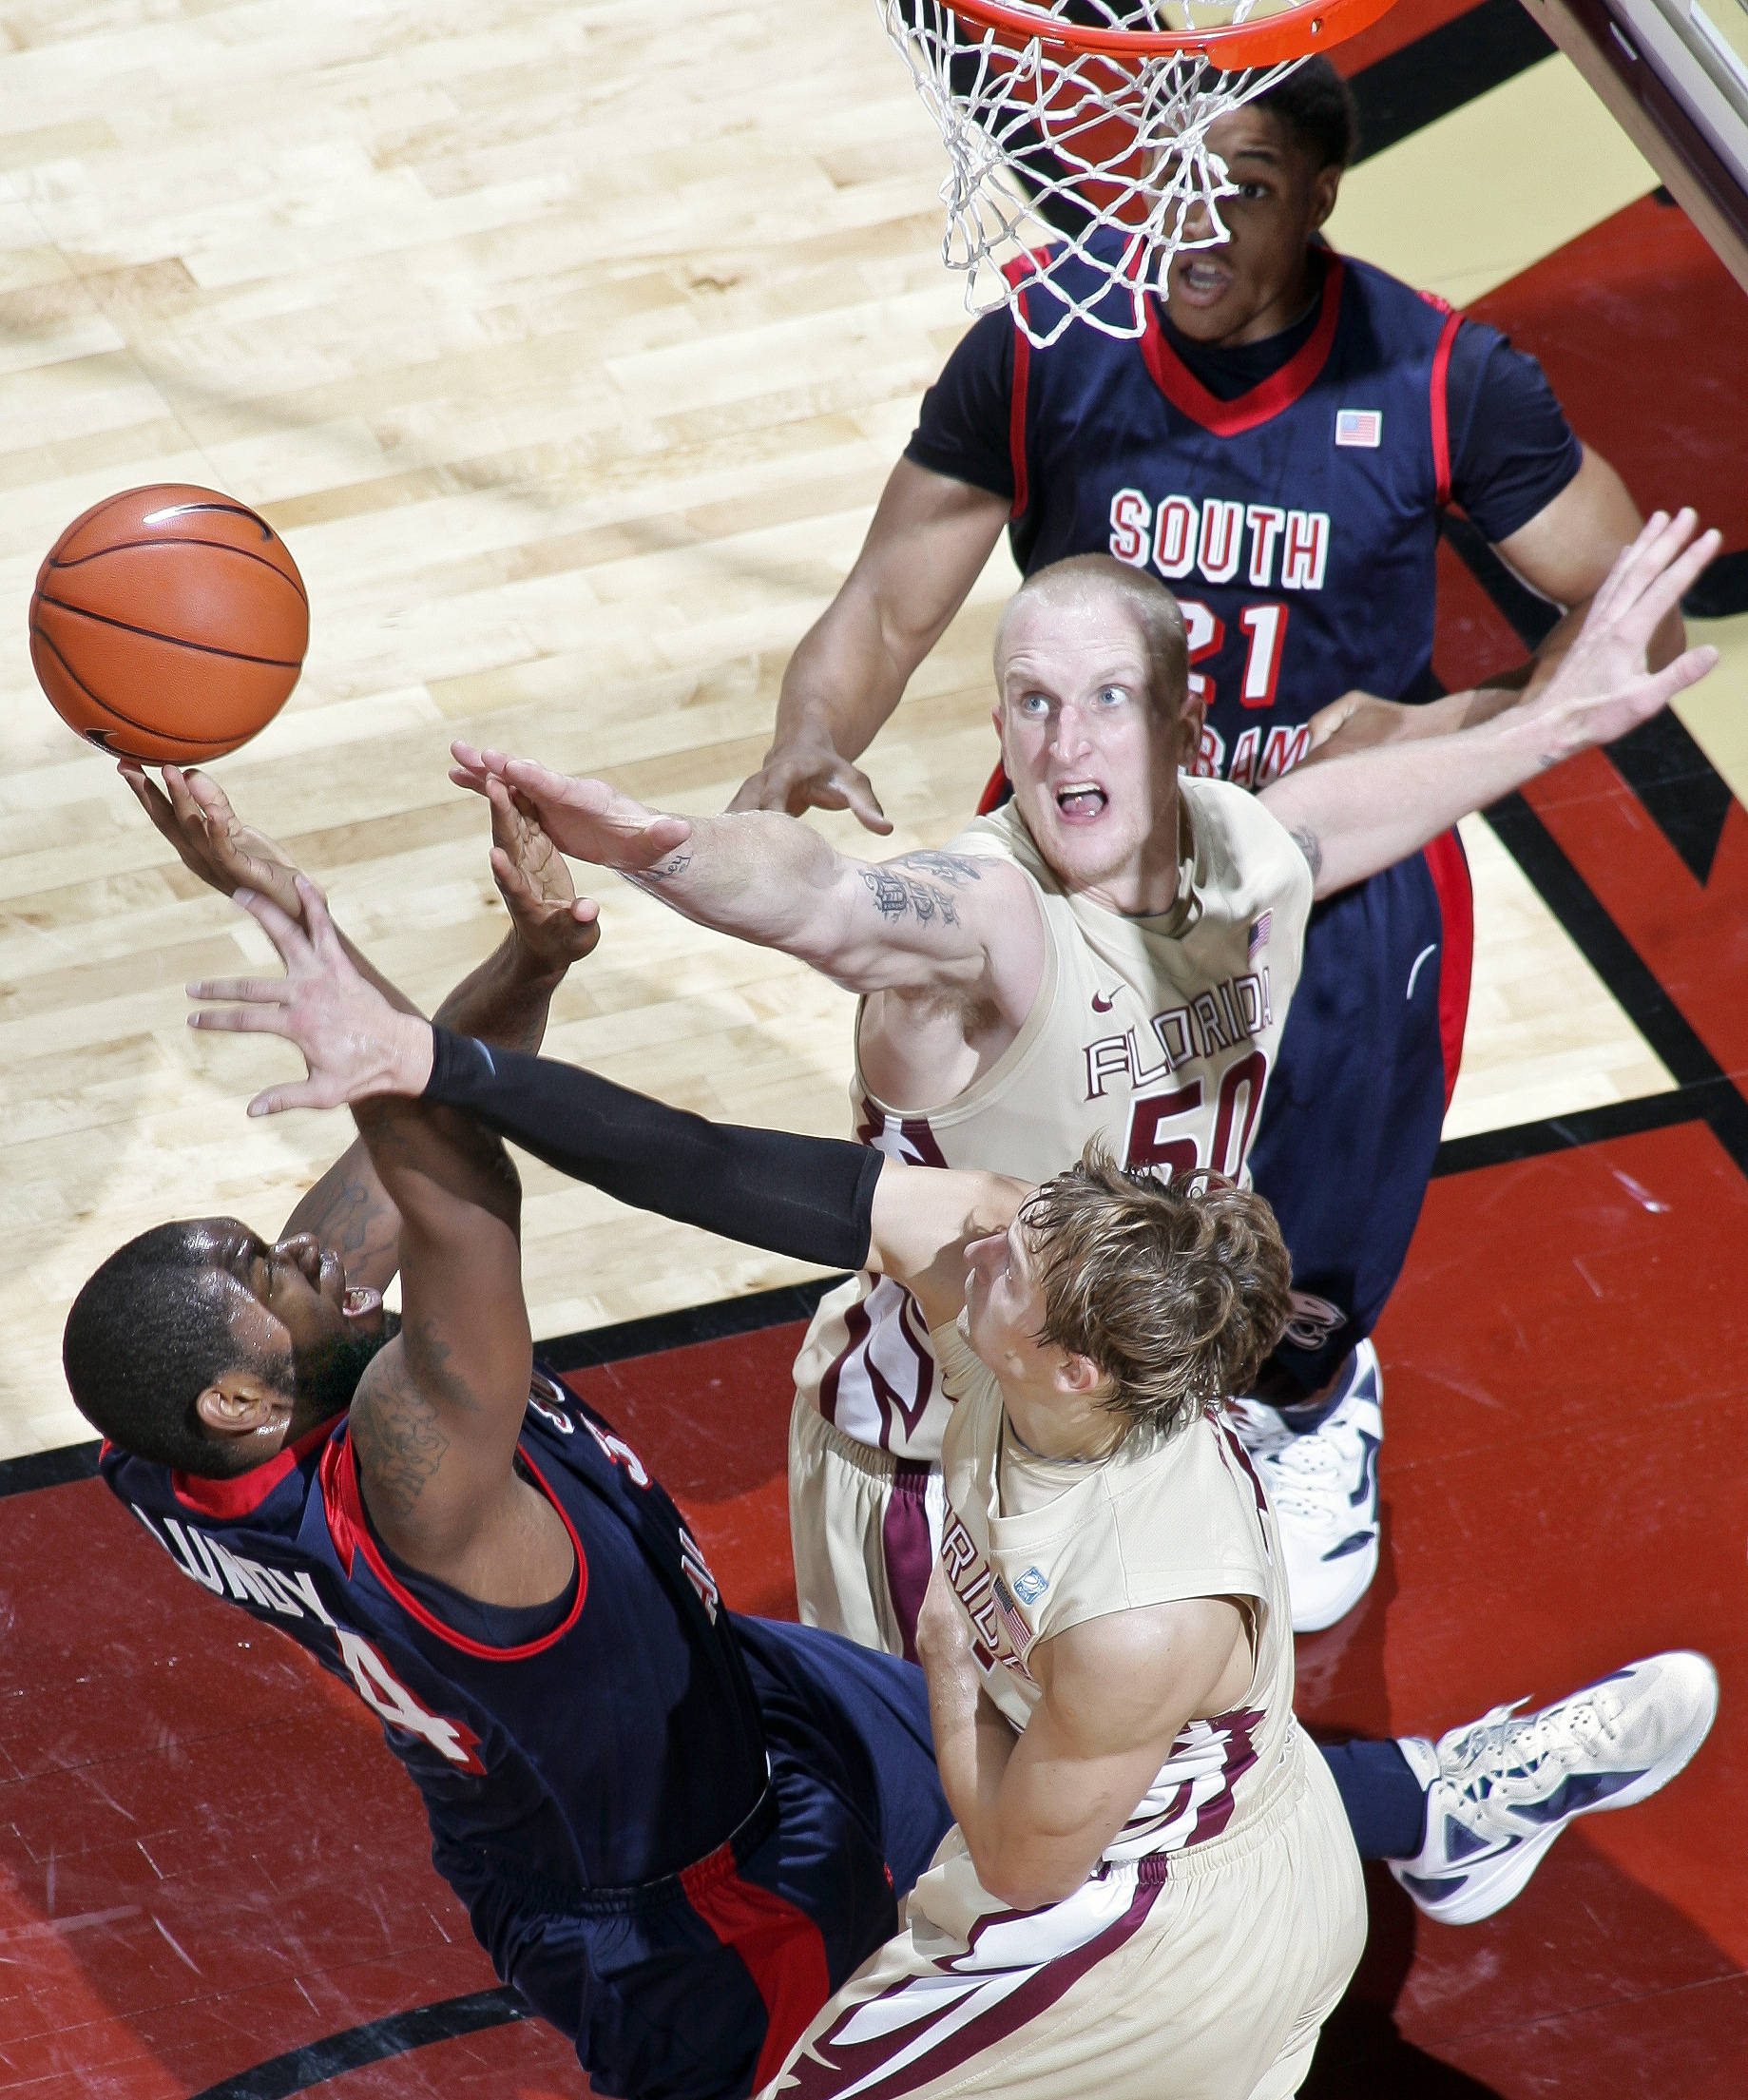 South Alabama forward Antione Lundy (34) has his shot blocked by Florida State guard Deividas Dulkys (4). (AP Photo/Phil Sears)